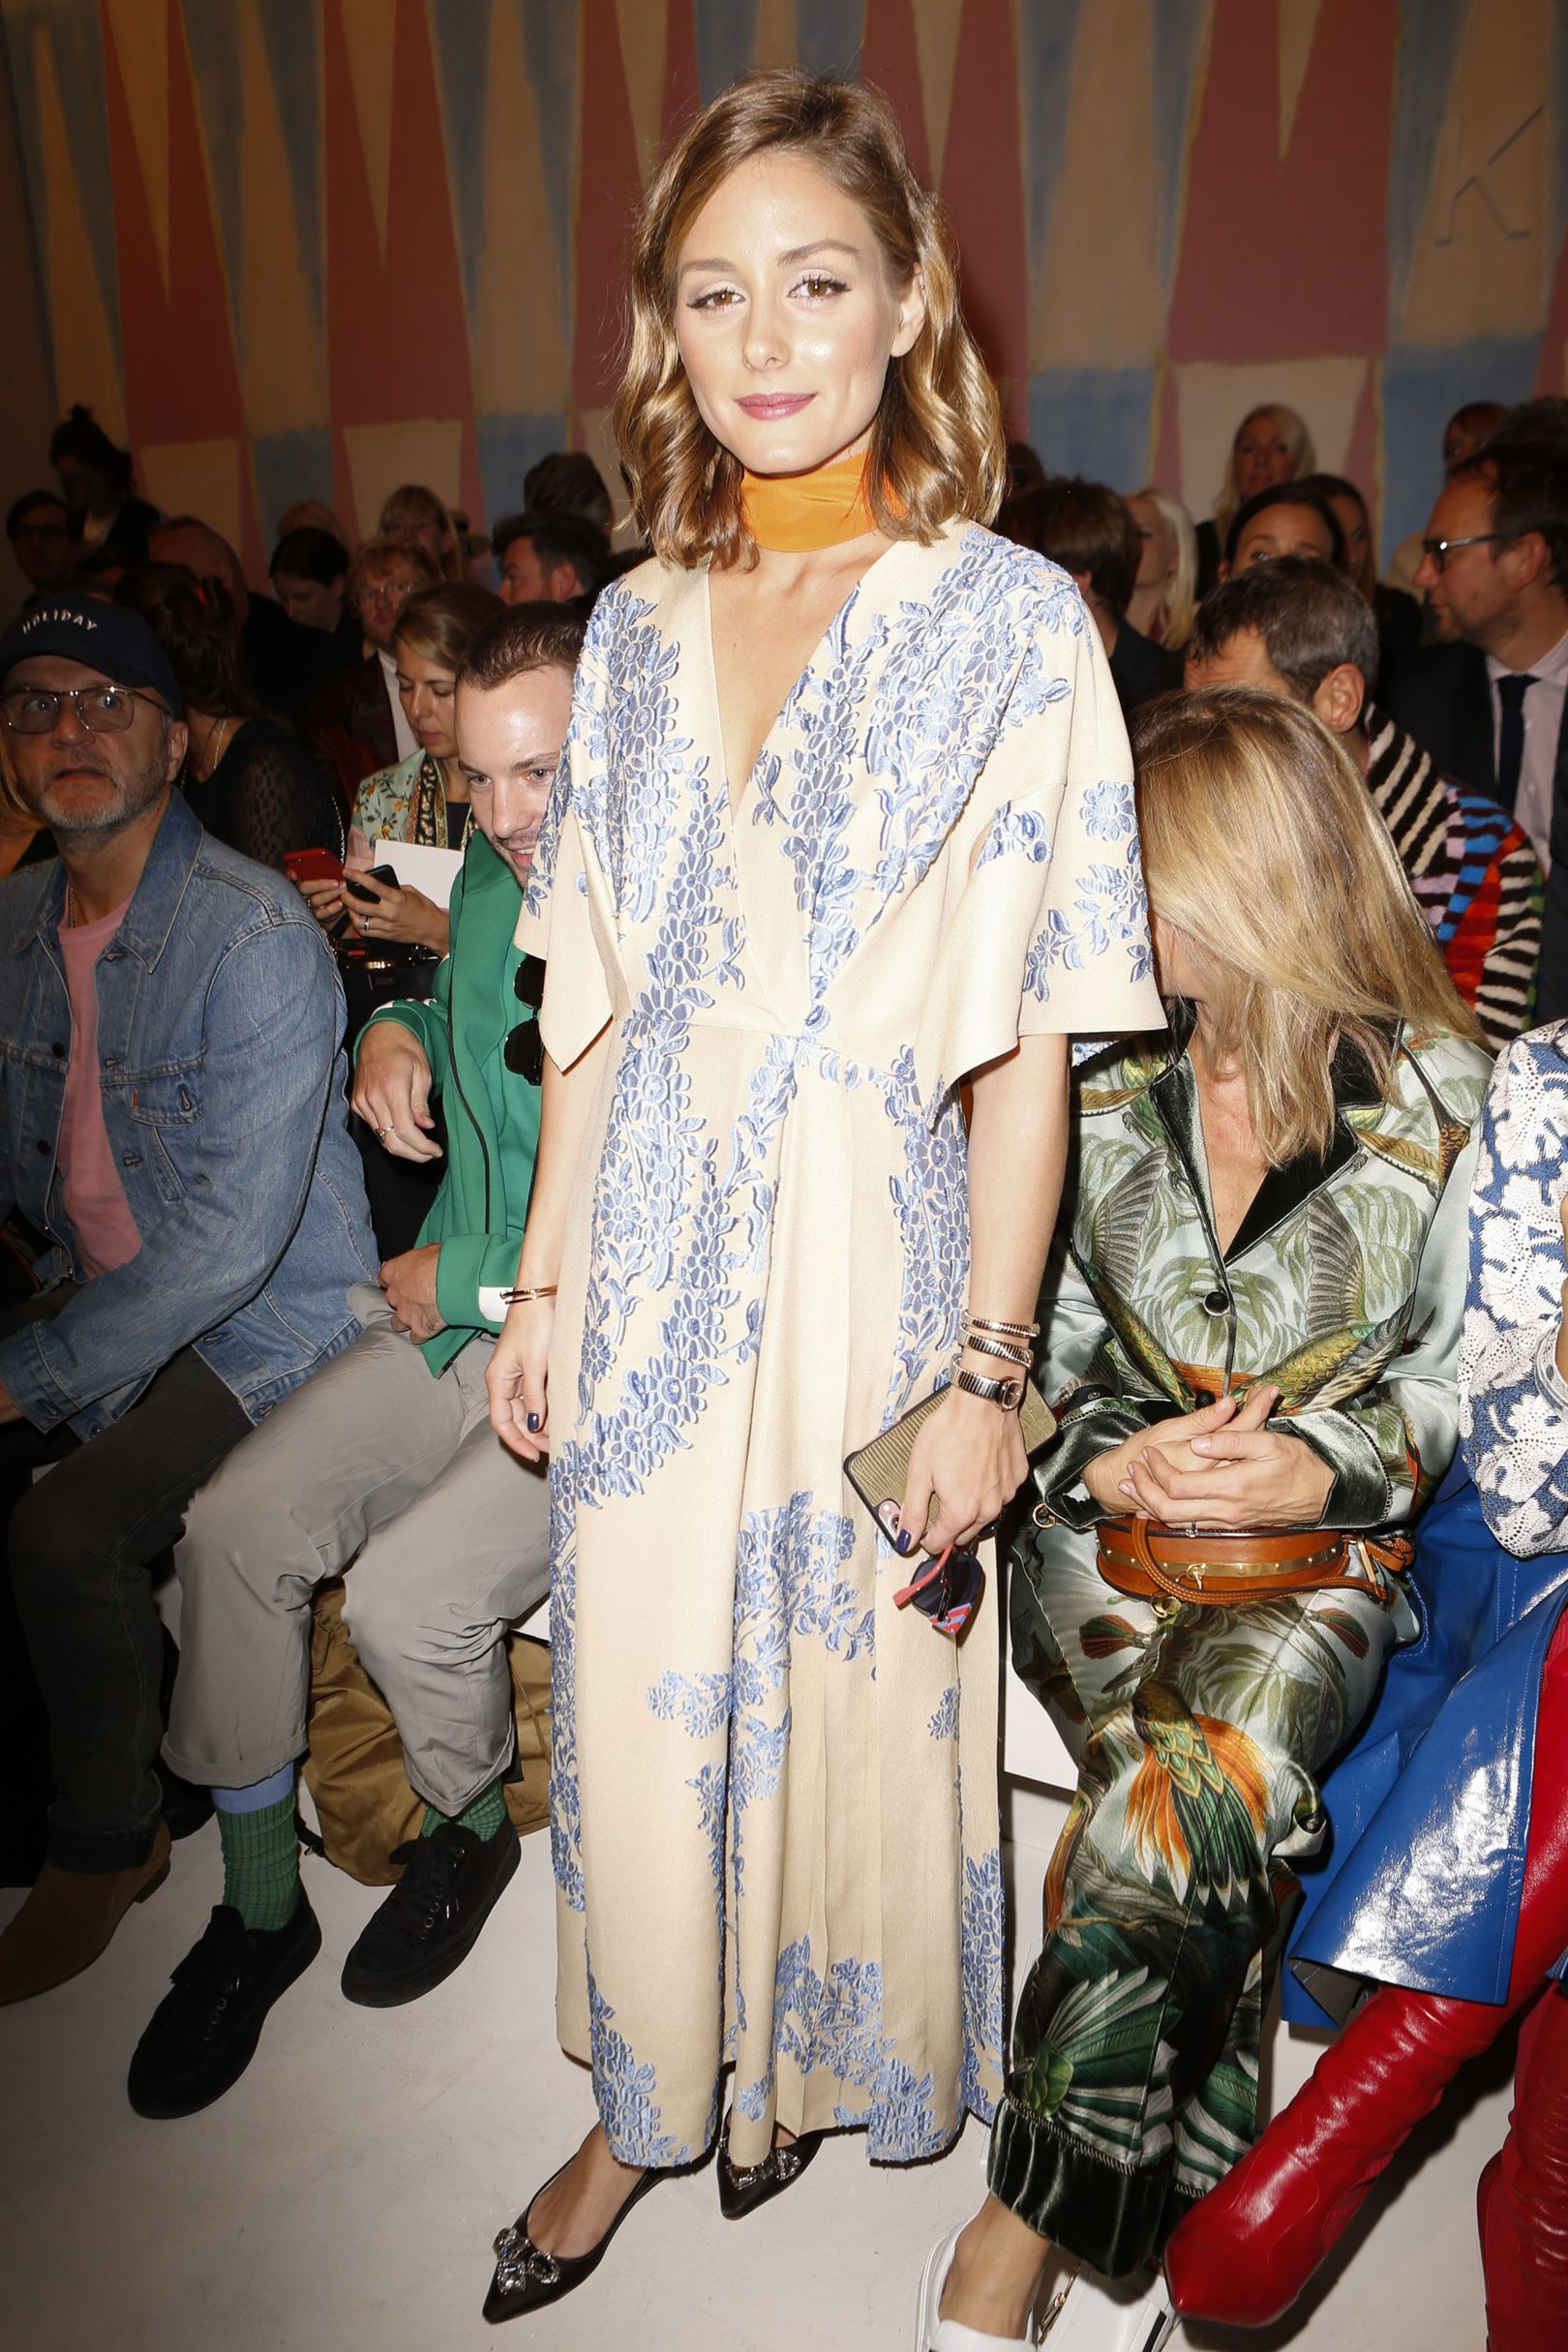 735b2214ad57 Olivia Palermo - Fendi Spring Summer 2018 Ready-To-Wear Front-Row -  September 21